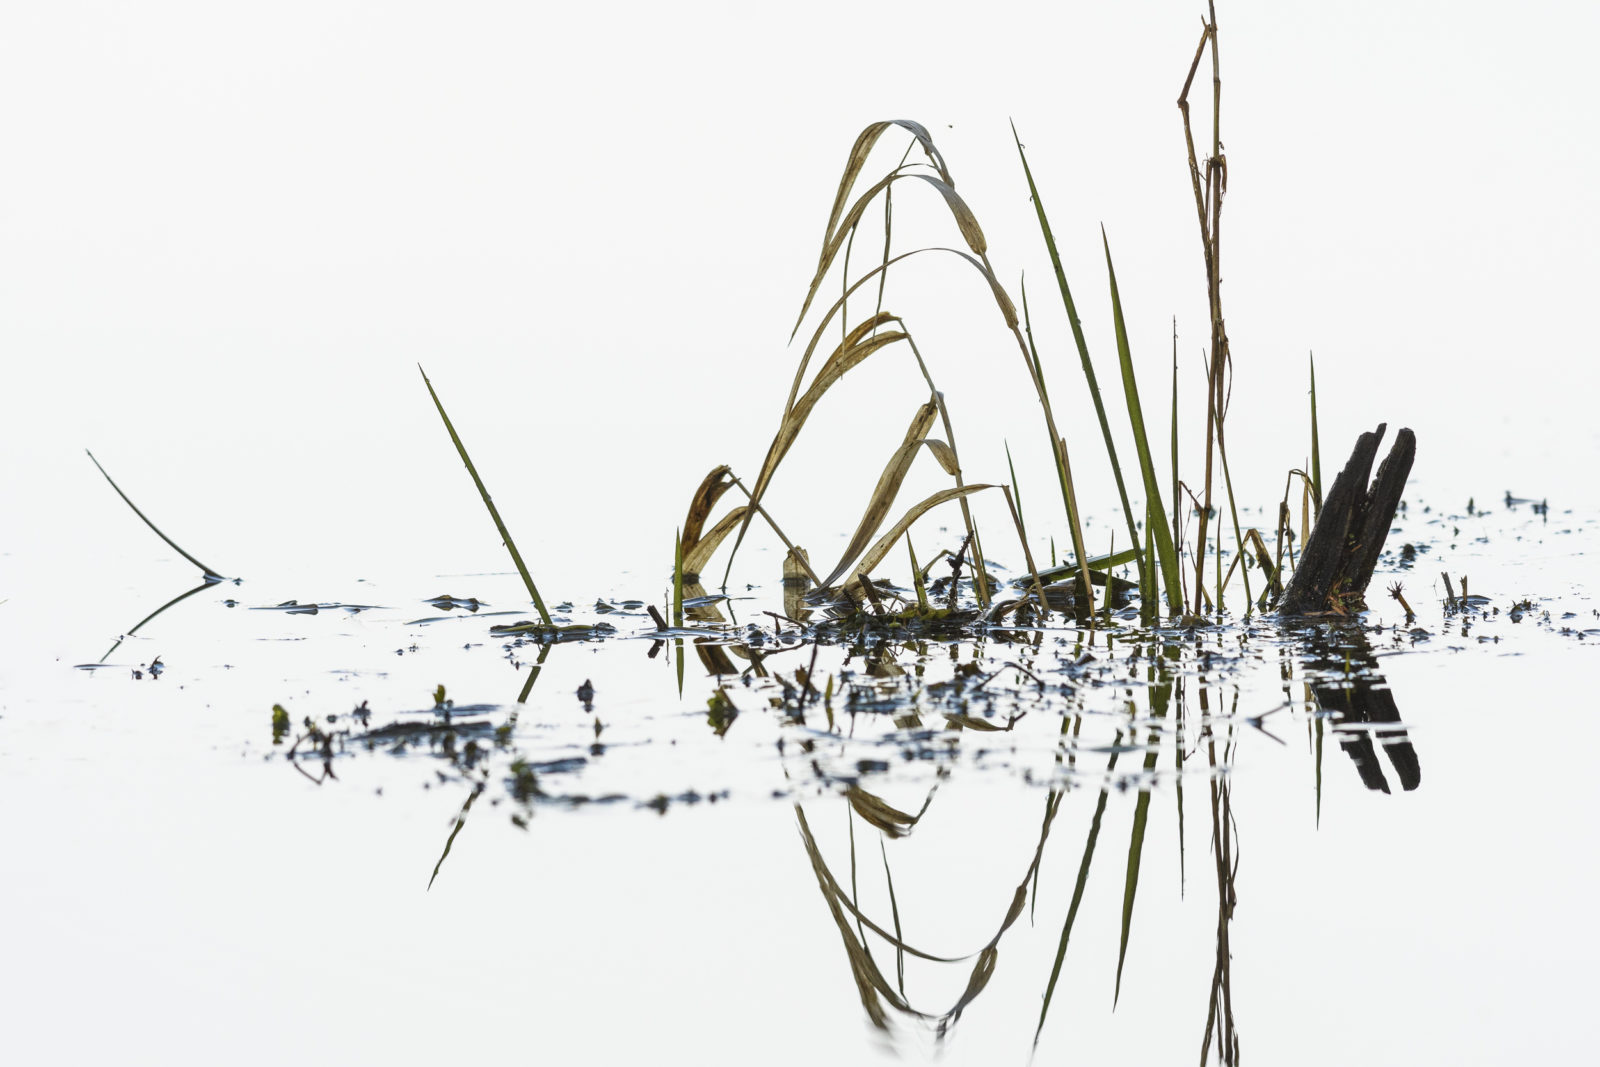 Aquatic Grass